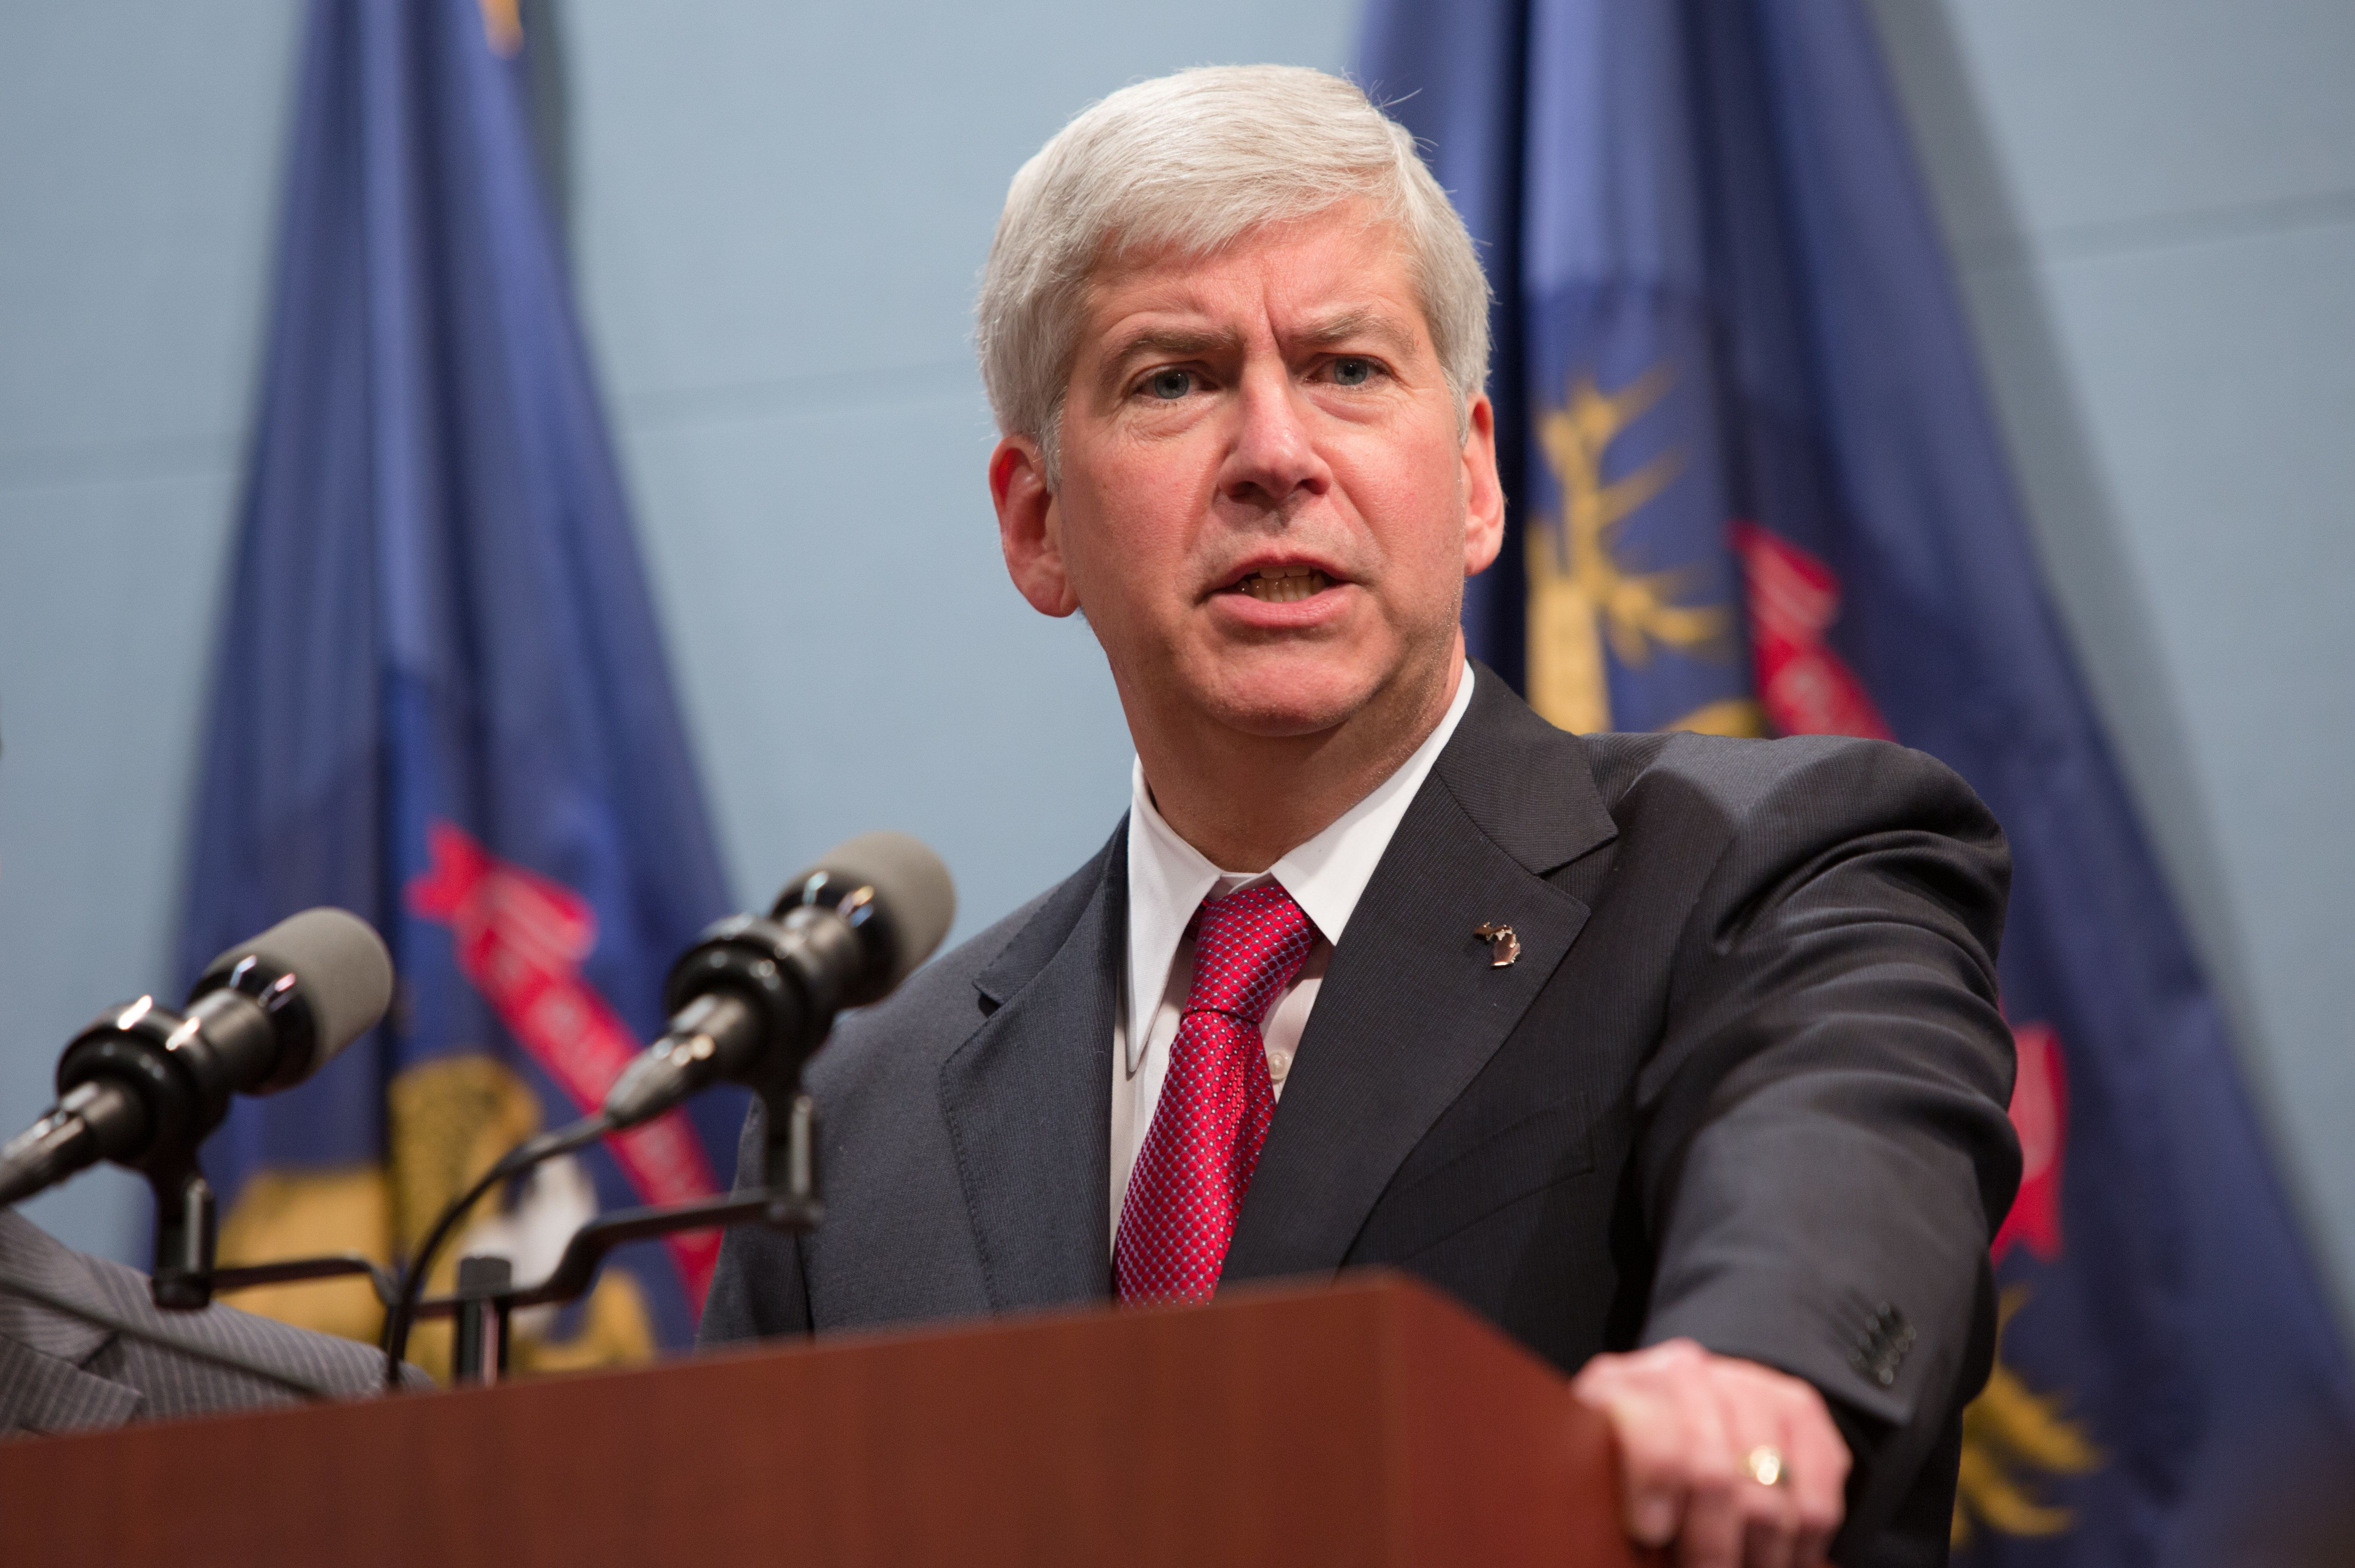 Outgoing Republican Gov. Rick Snyder is expected to sign the gutted bill.